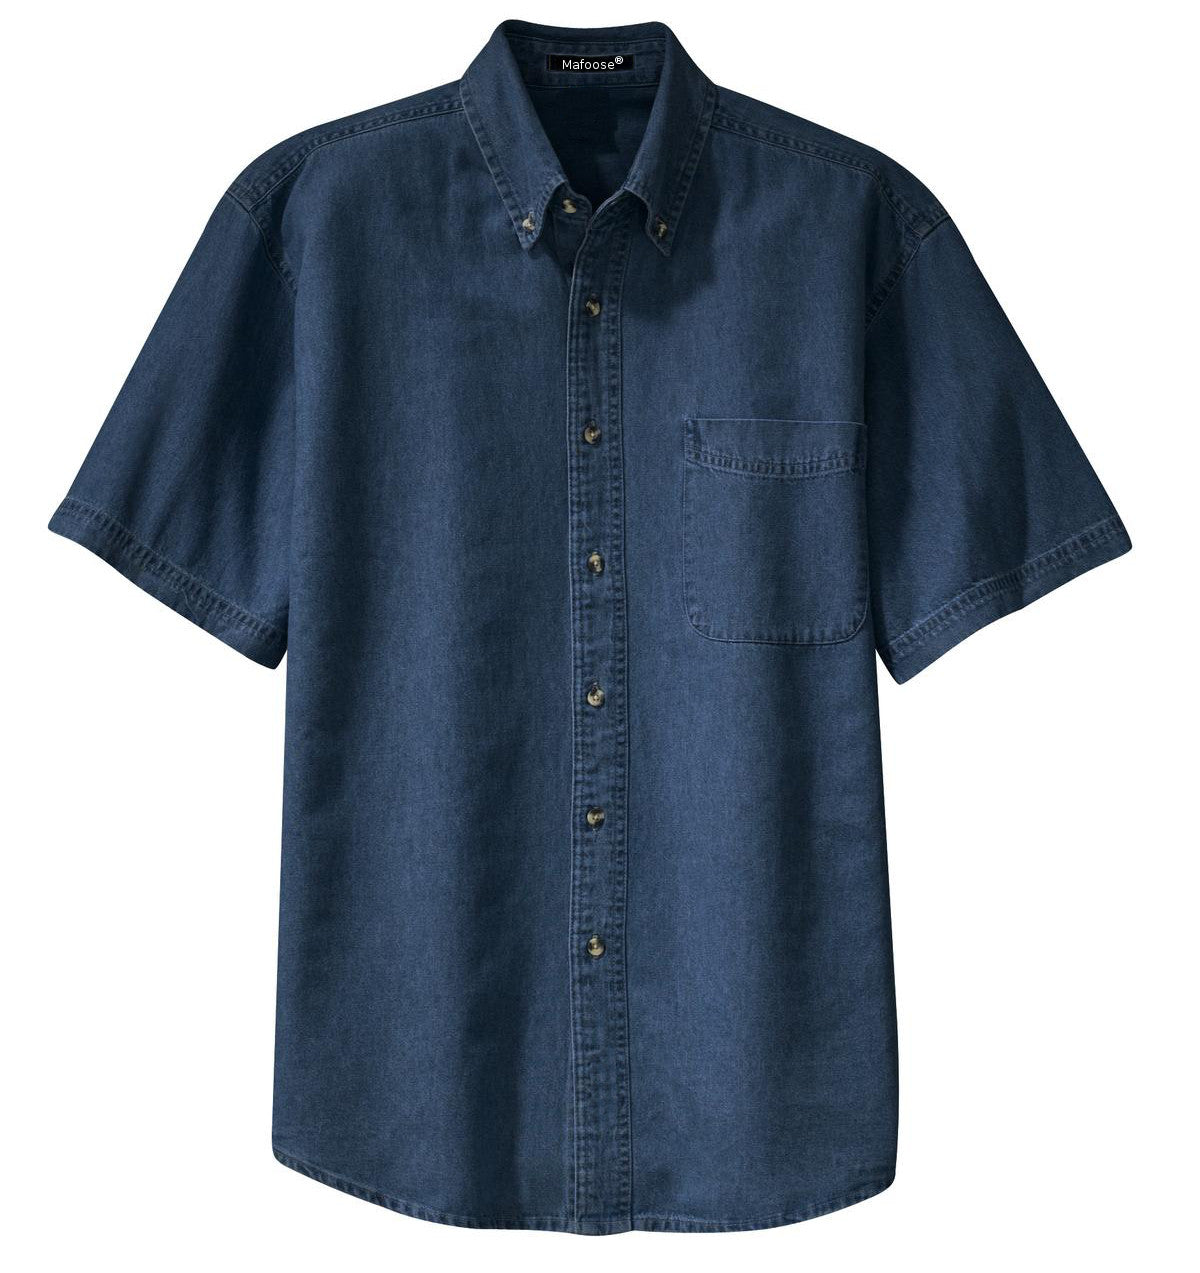 Mafoose Men's Short Sleeve Value Denim Shirt Ink Blue-Front